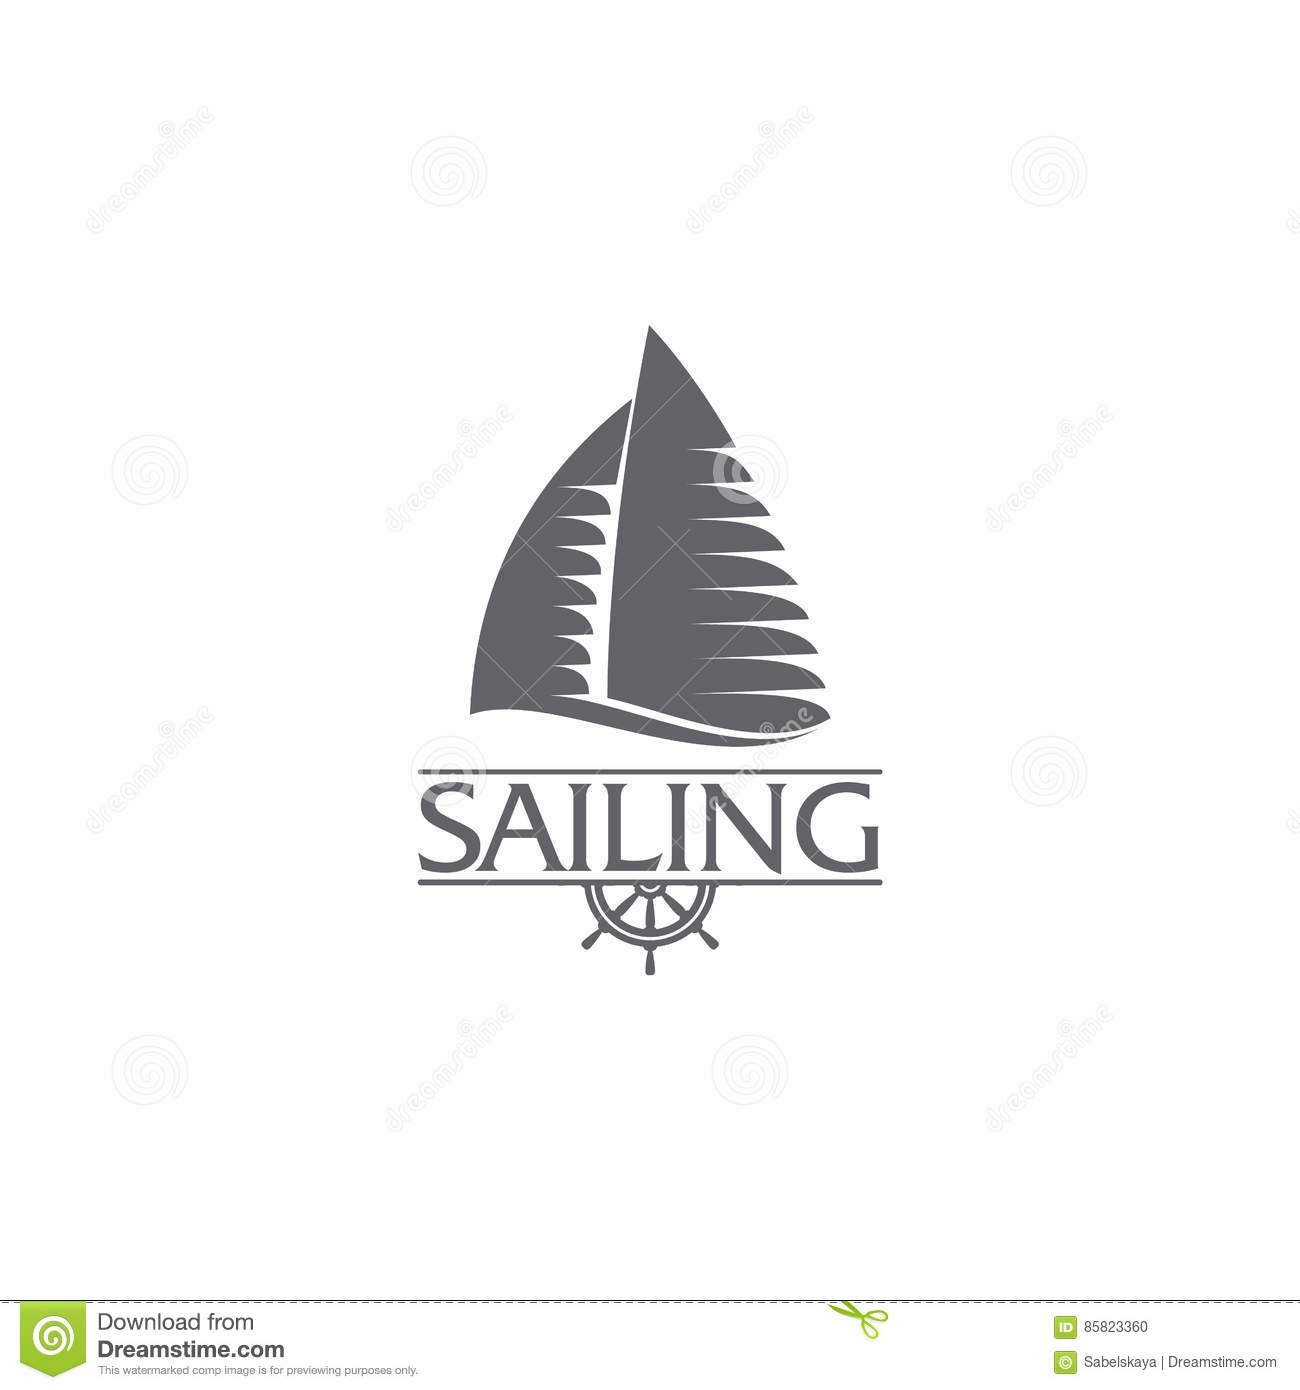 Graphic yacht club sailing sport logo template with steering wheel graphic yacht club sailing sport logo template with steering wheel toneelgroepblik Choice Image